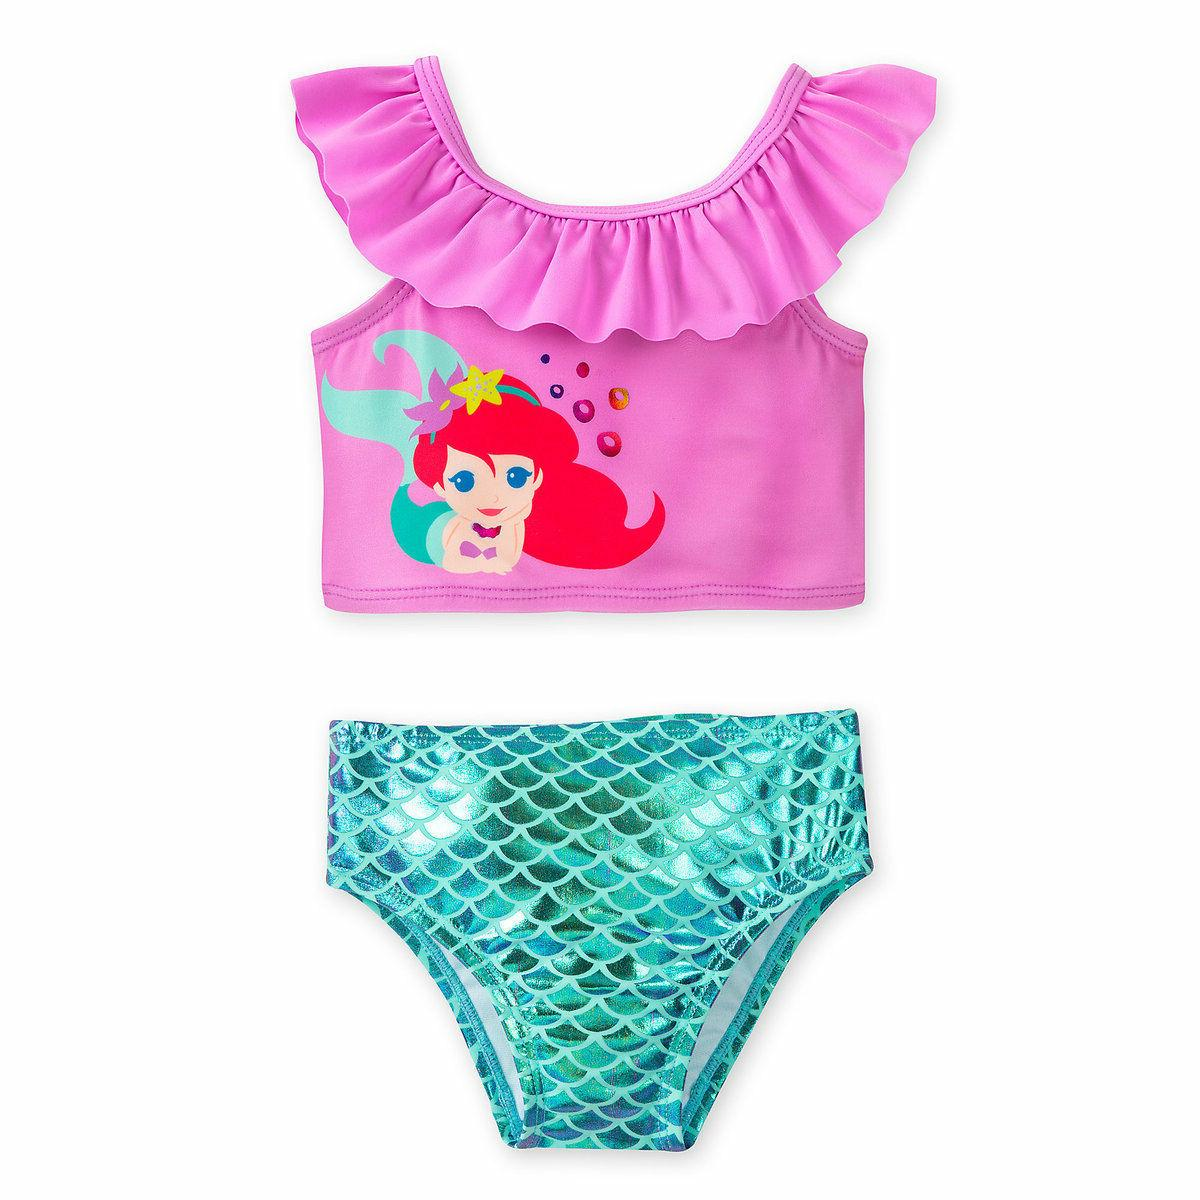 store princess ariel two piece baby swimsuit